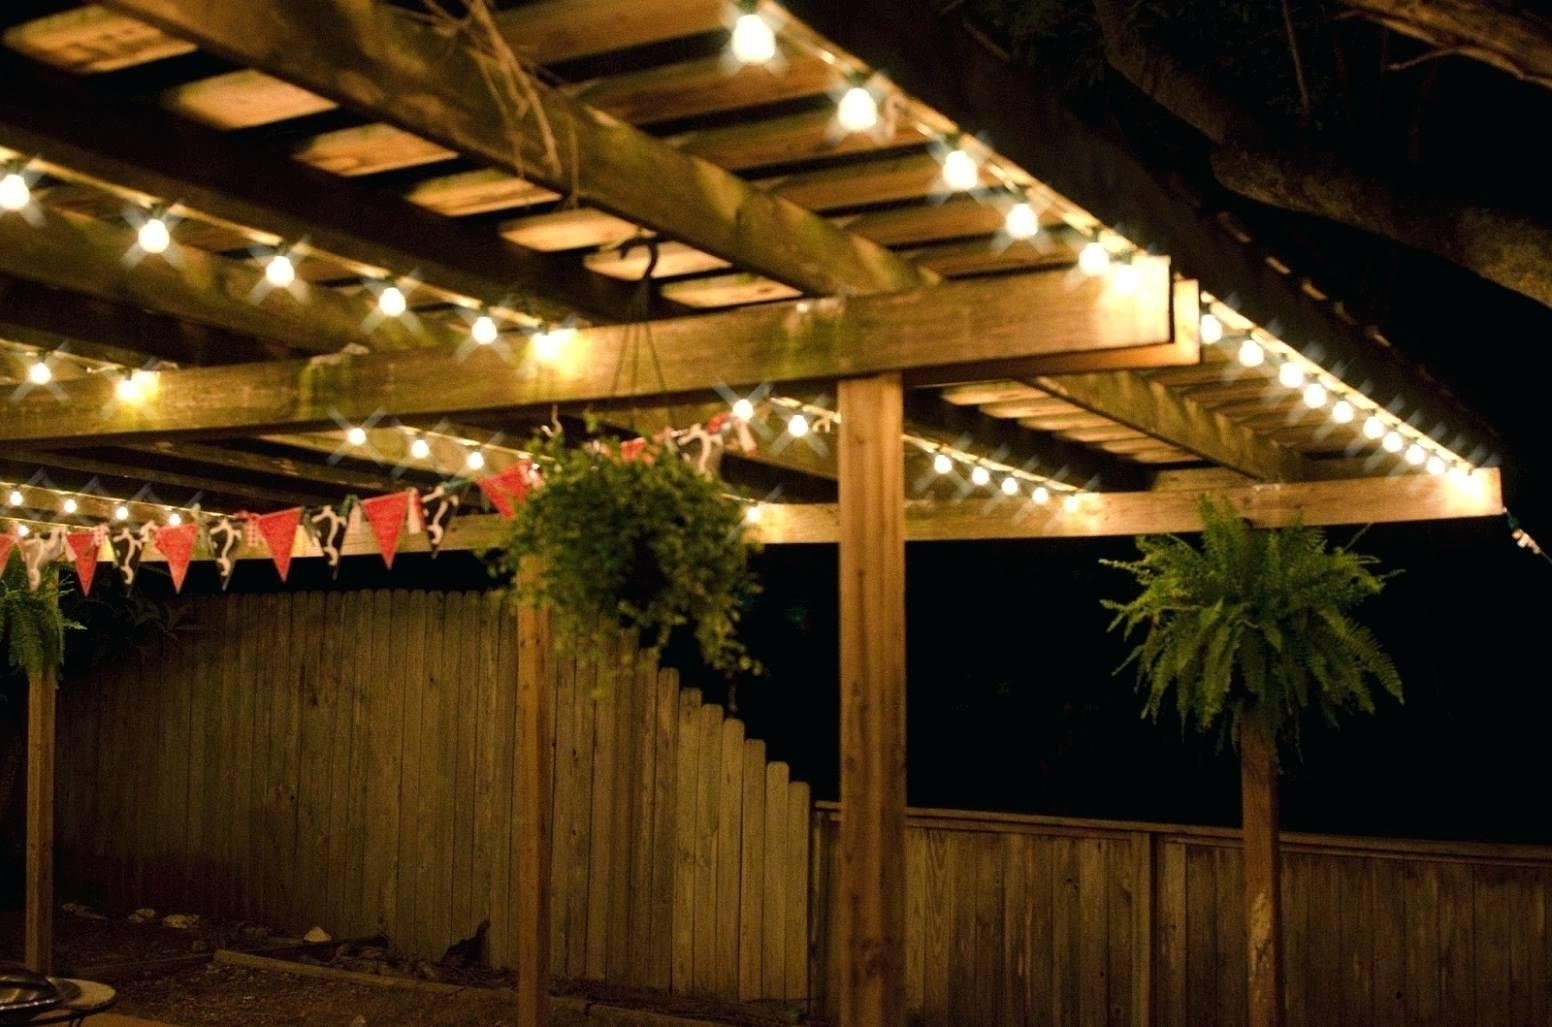 2018 Hanging Outdoor String Lights At Target With Regard To Exciting Target Outdoor String Lights Images – Best Inspiration Home (View 2 of 20)